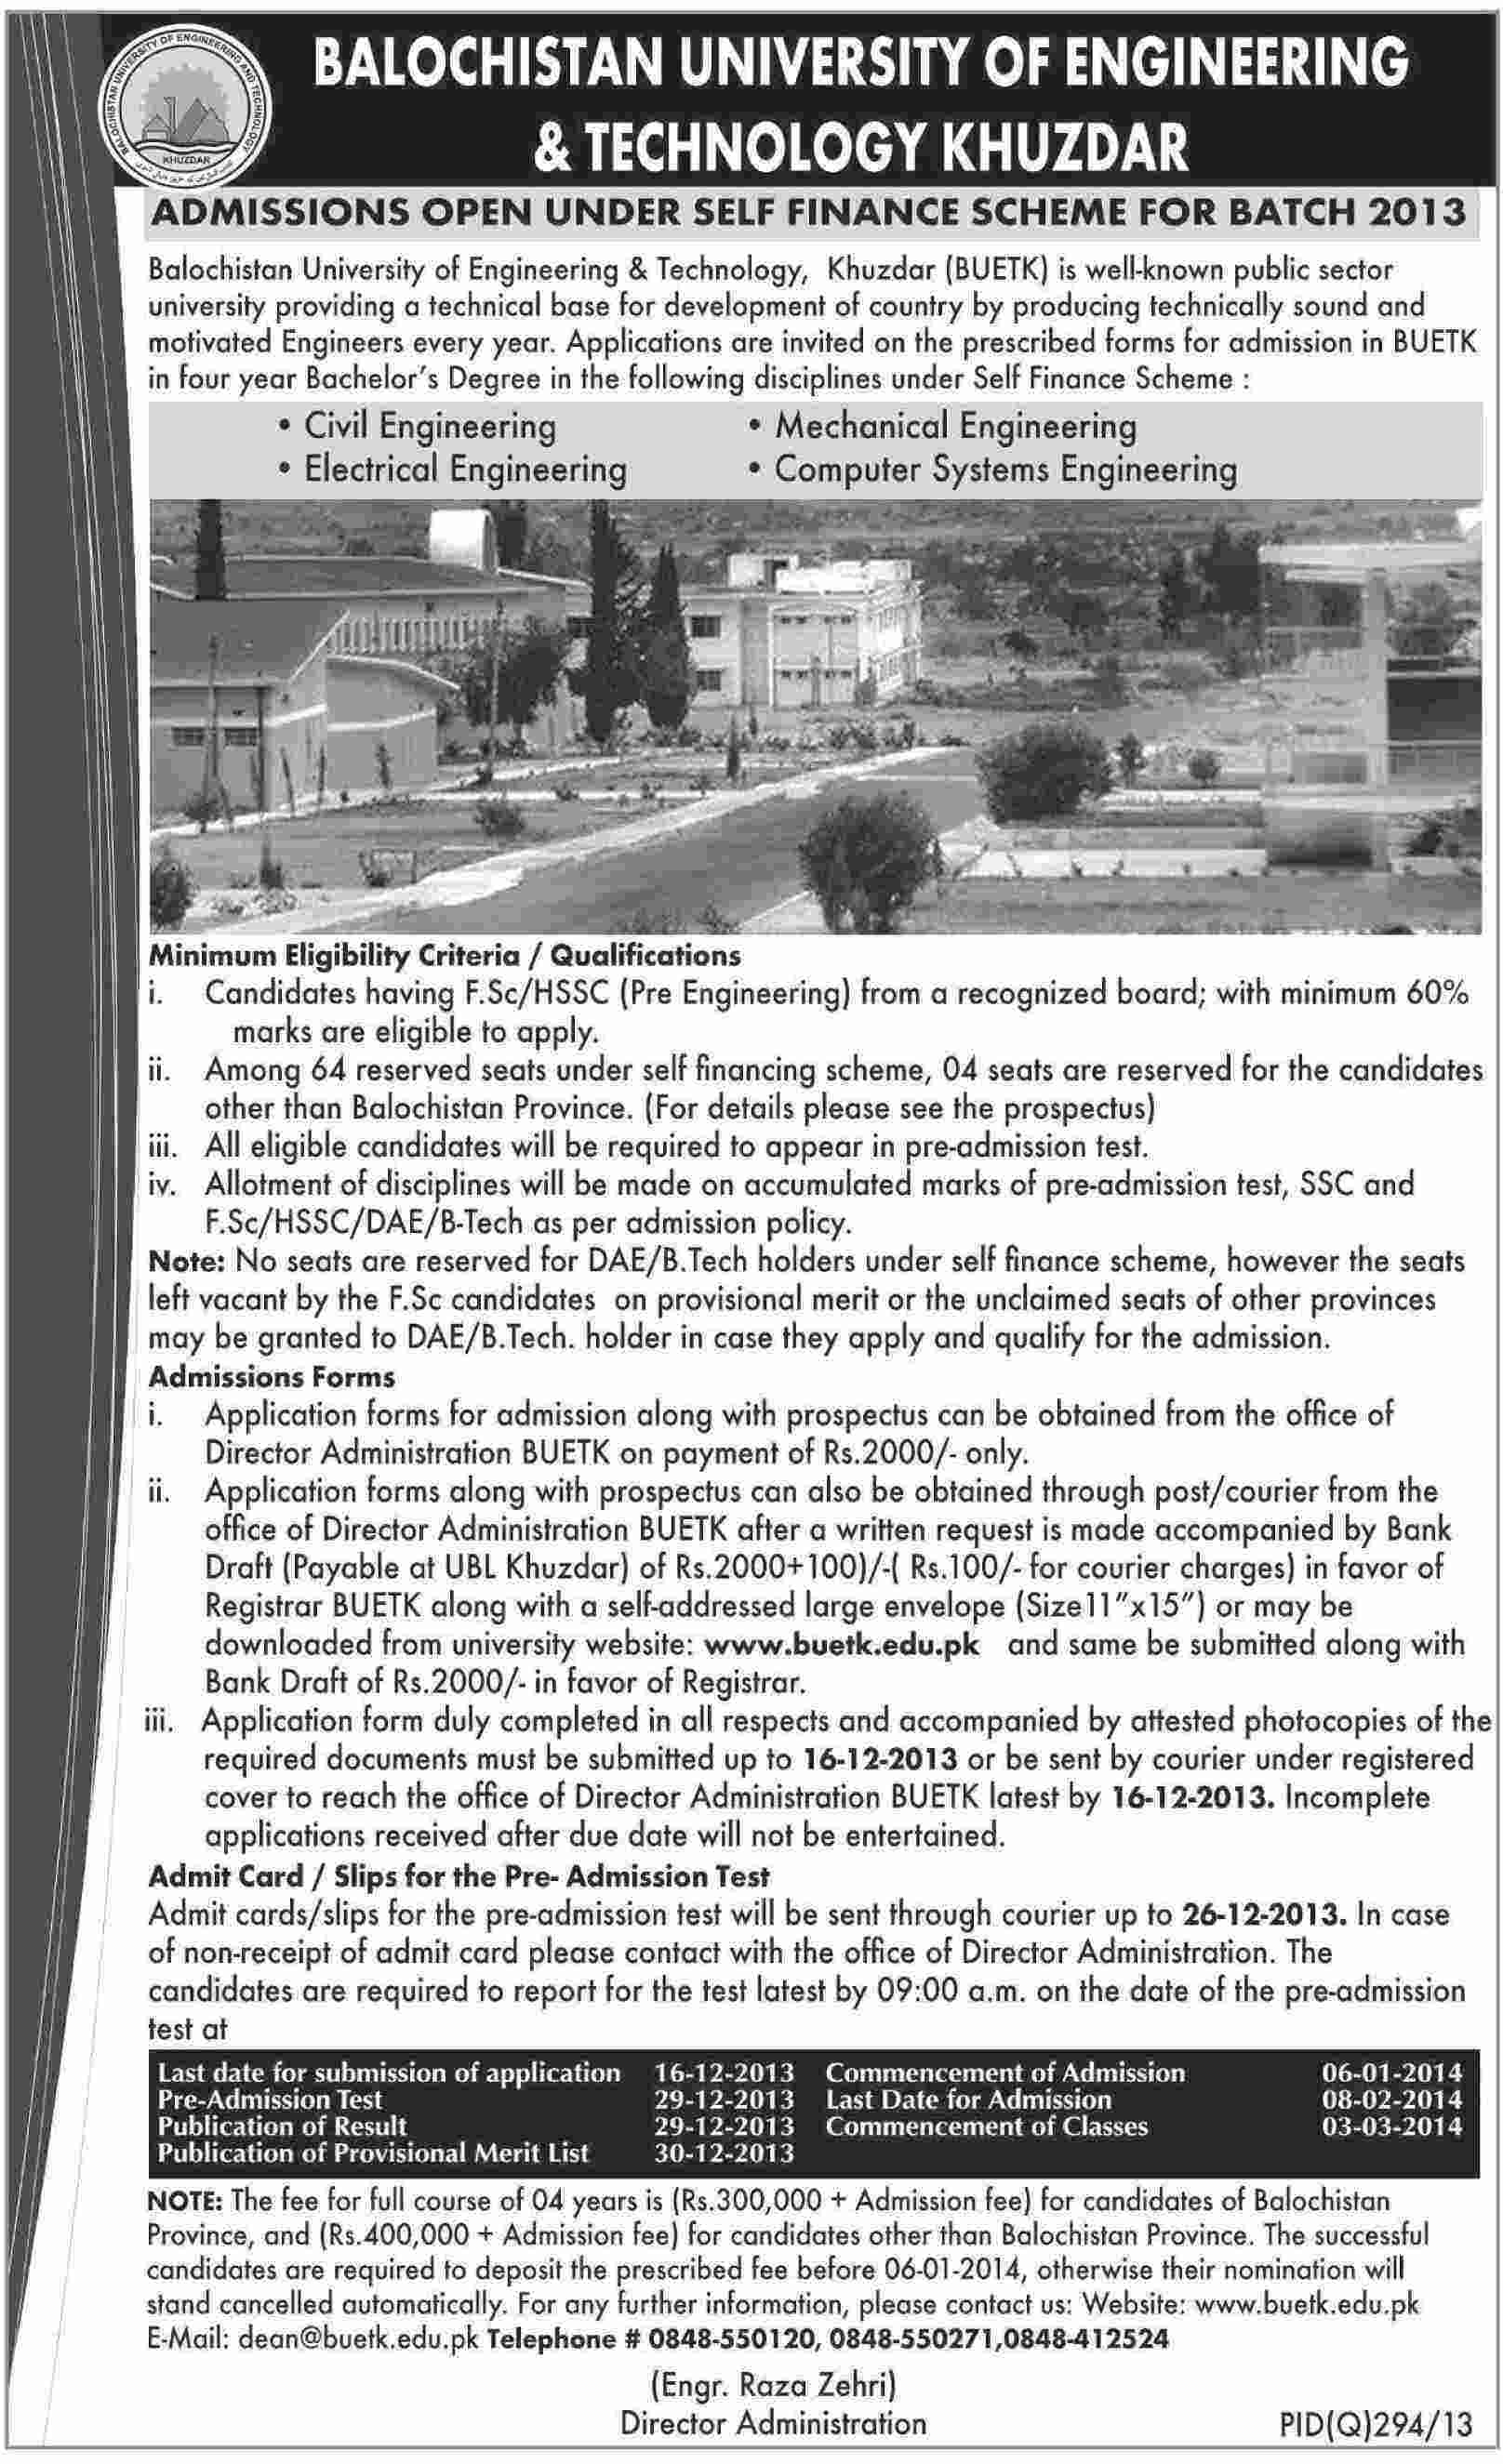 Balochistan University of Engineering BUET Khuzdar Admission 2013